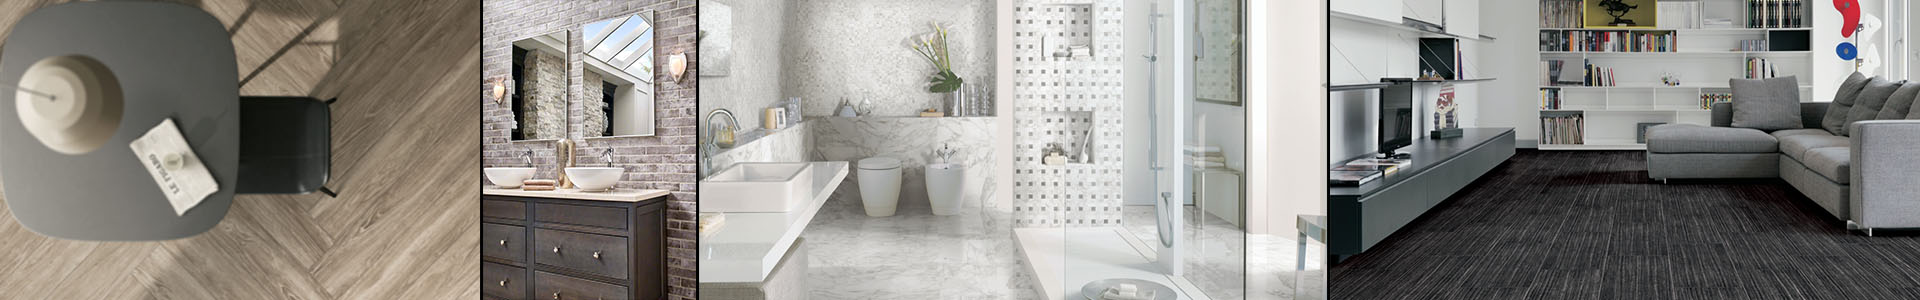 Porcelain-Tile-Raleigh-Boutique-Kitchen-Bathroom-Counter-FLoor